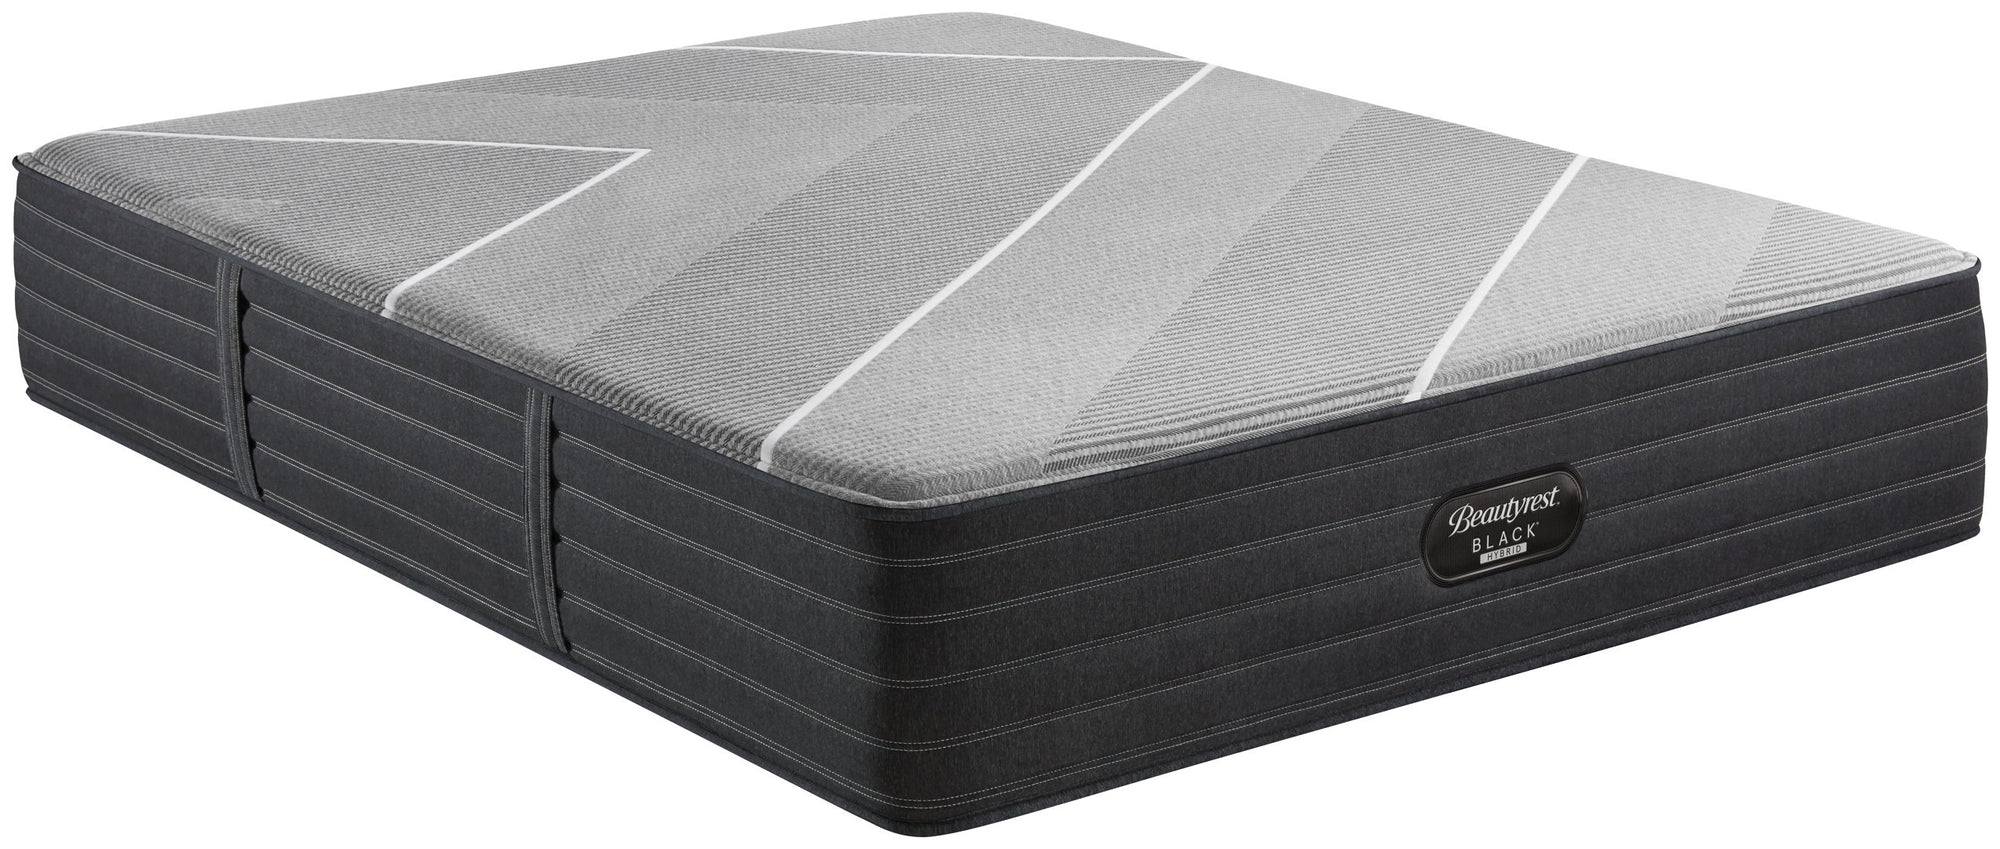 Beautyrest Black Hybrid X-Class Ultra Plush Mattress Mattress Simmons